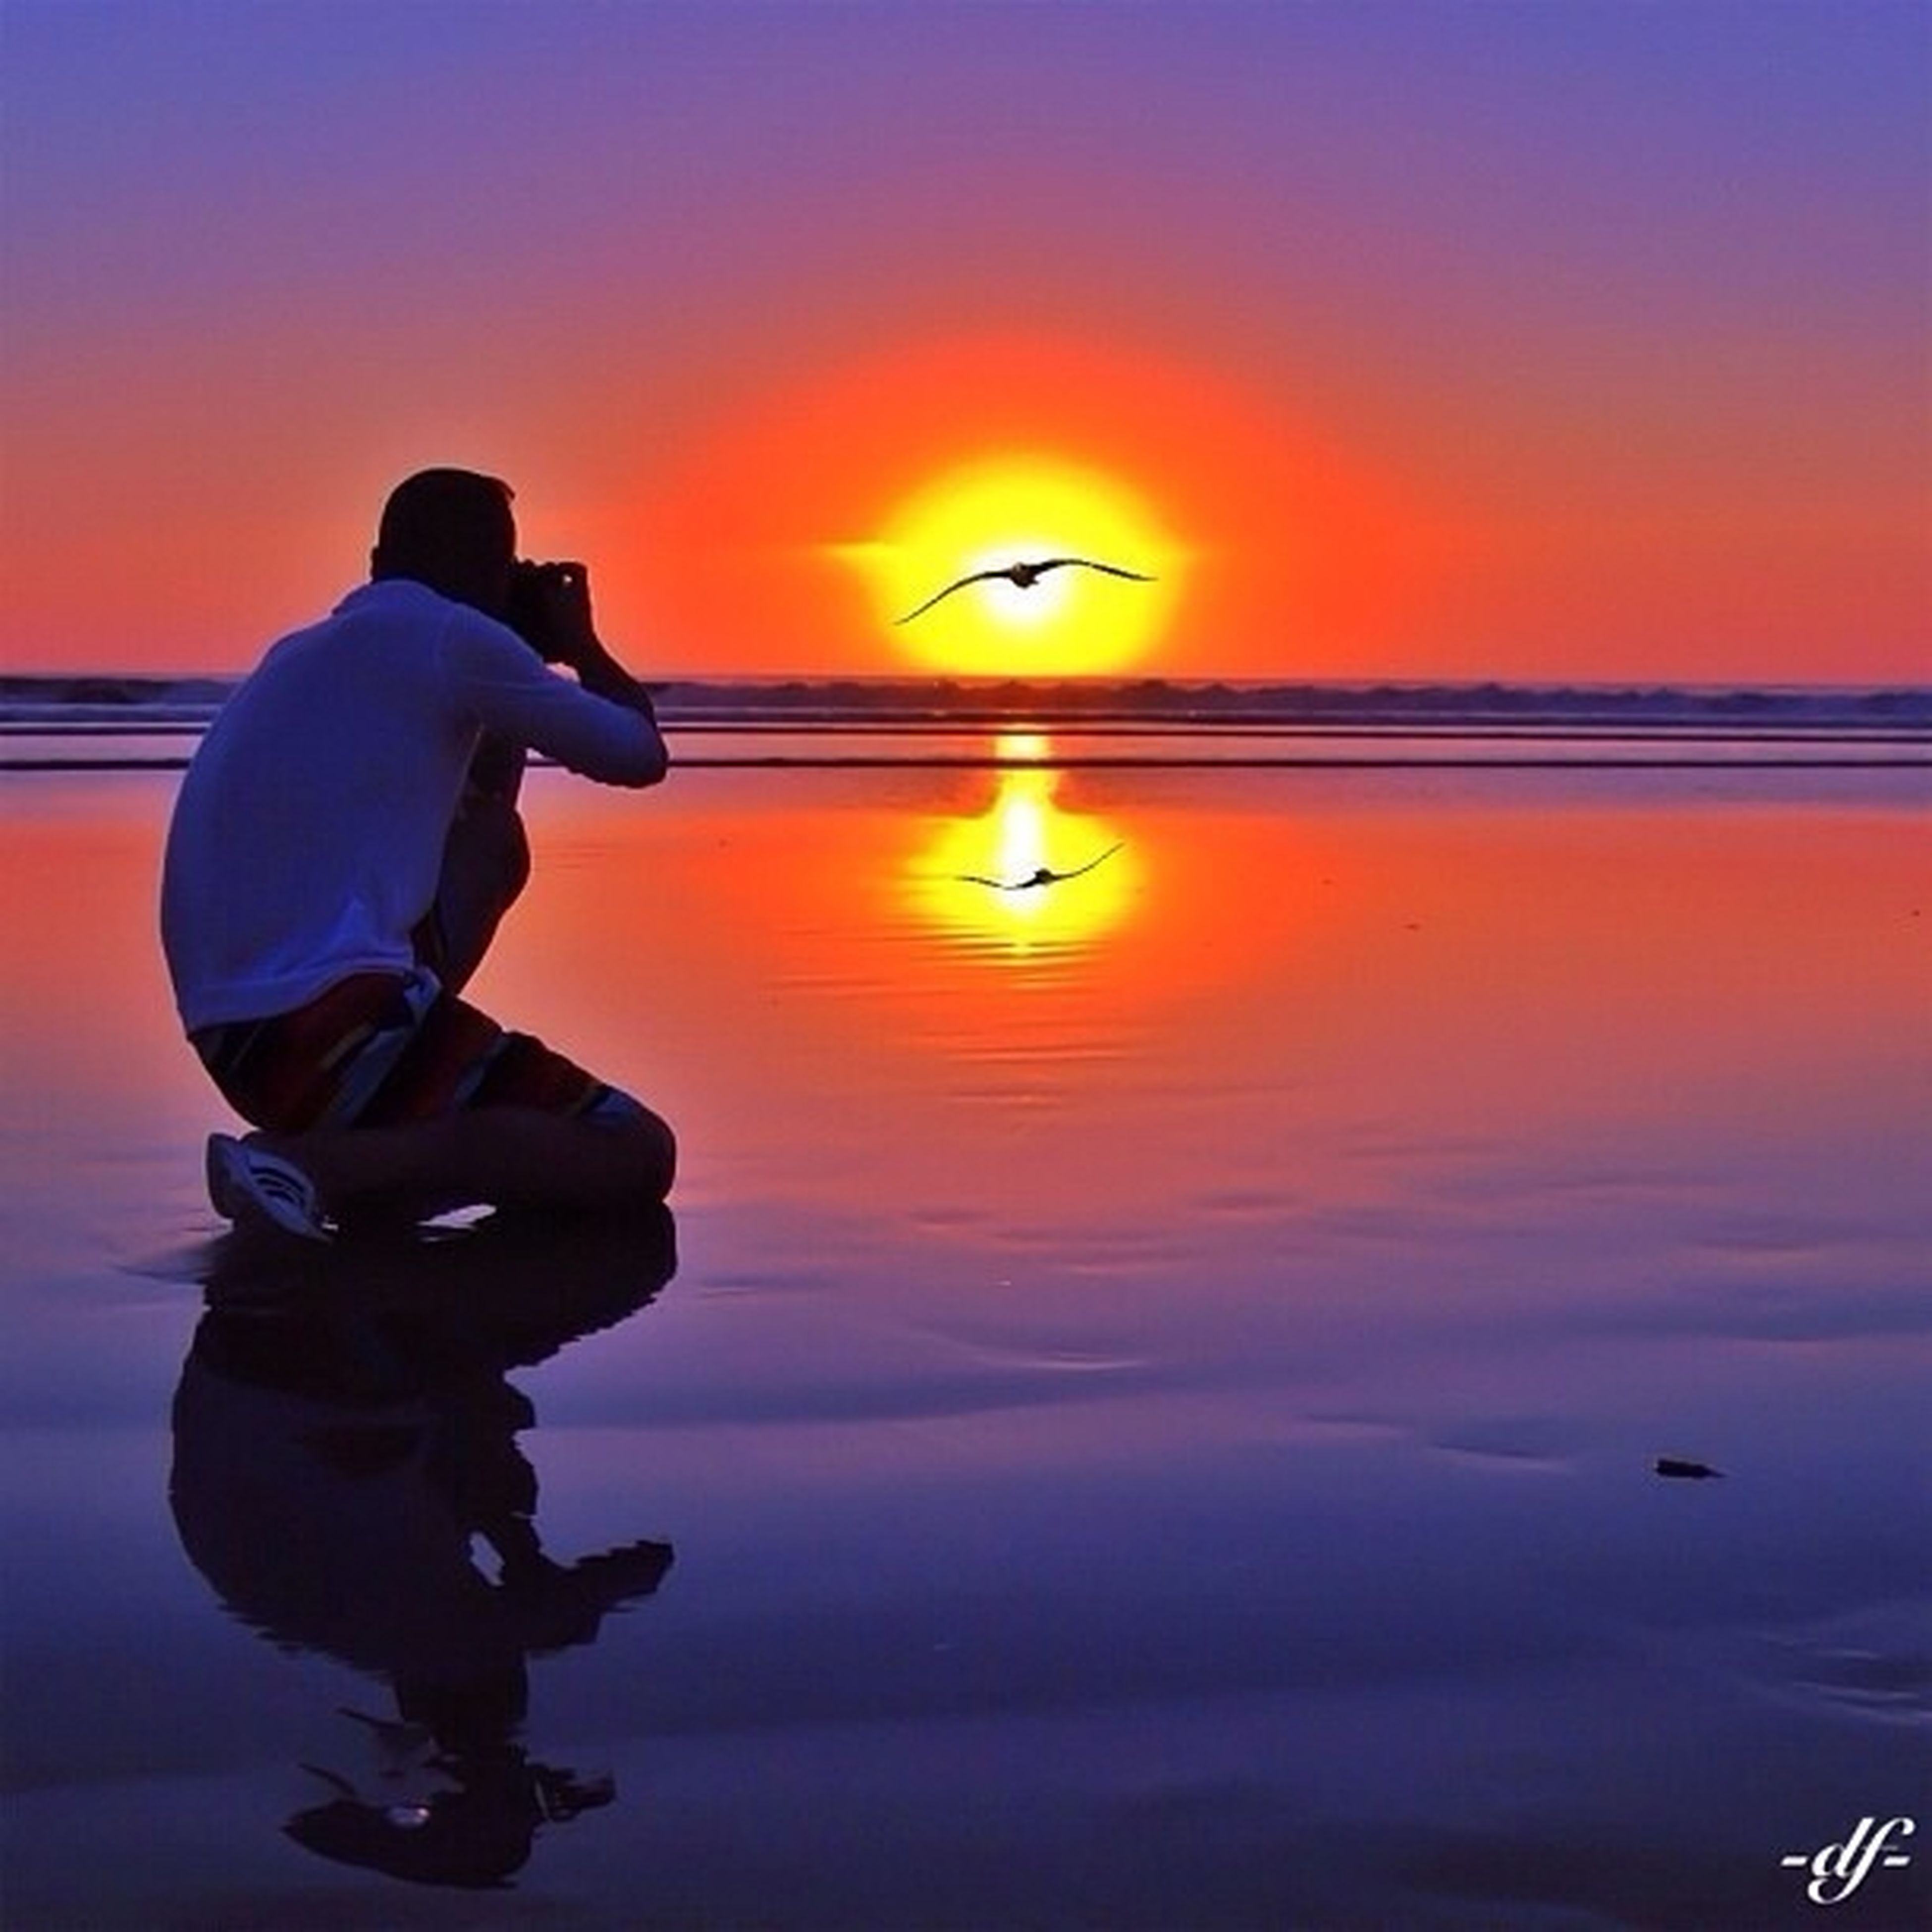 sunset, orange color, water, silhouette, sea, lifestyles, men, horizon over water, scenics, leisure activity, sun, beauty in nature, sky, standing, reflection, tranquility, tranquil scene, idyllic